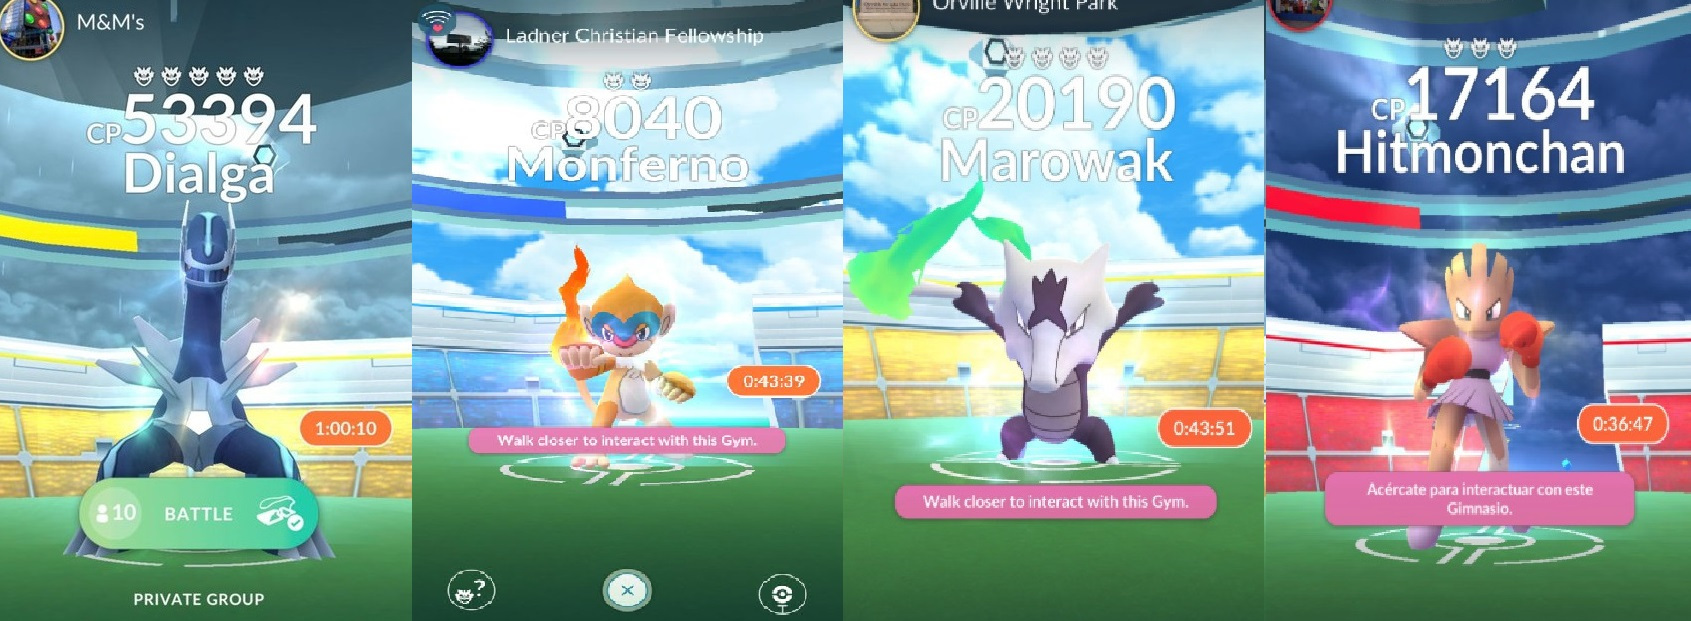 Photo of Pokemon Go New Raid Bosses March Edition